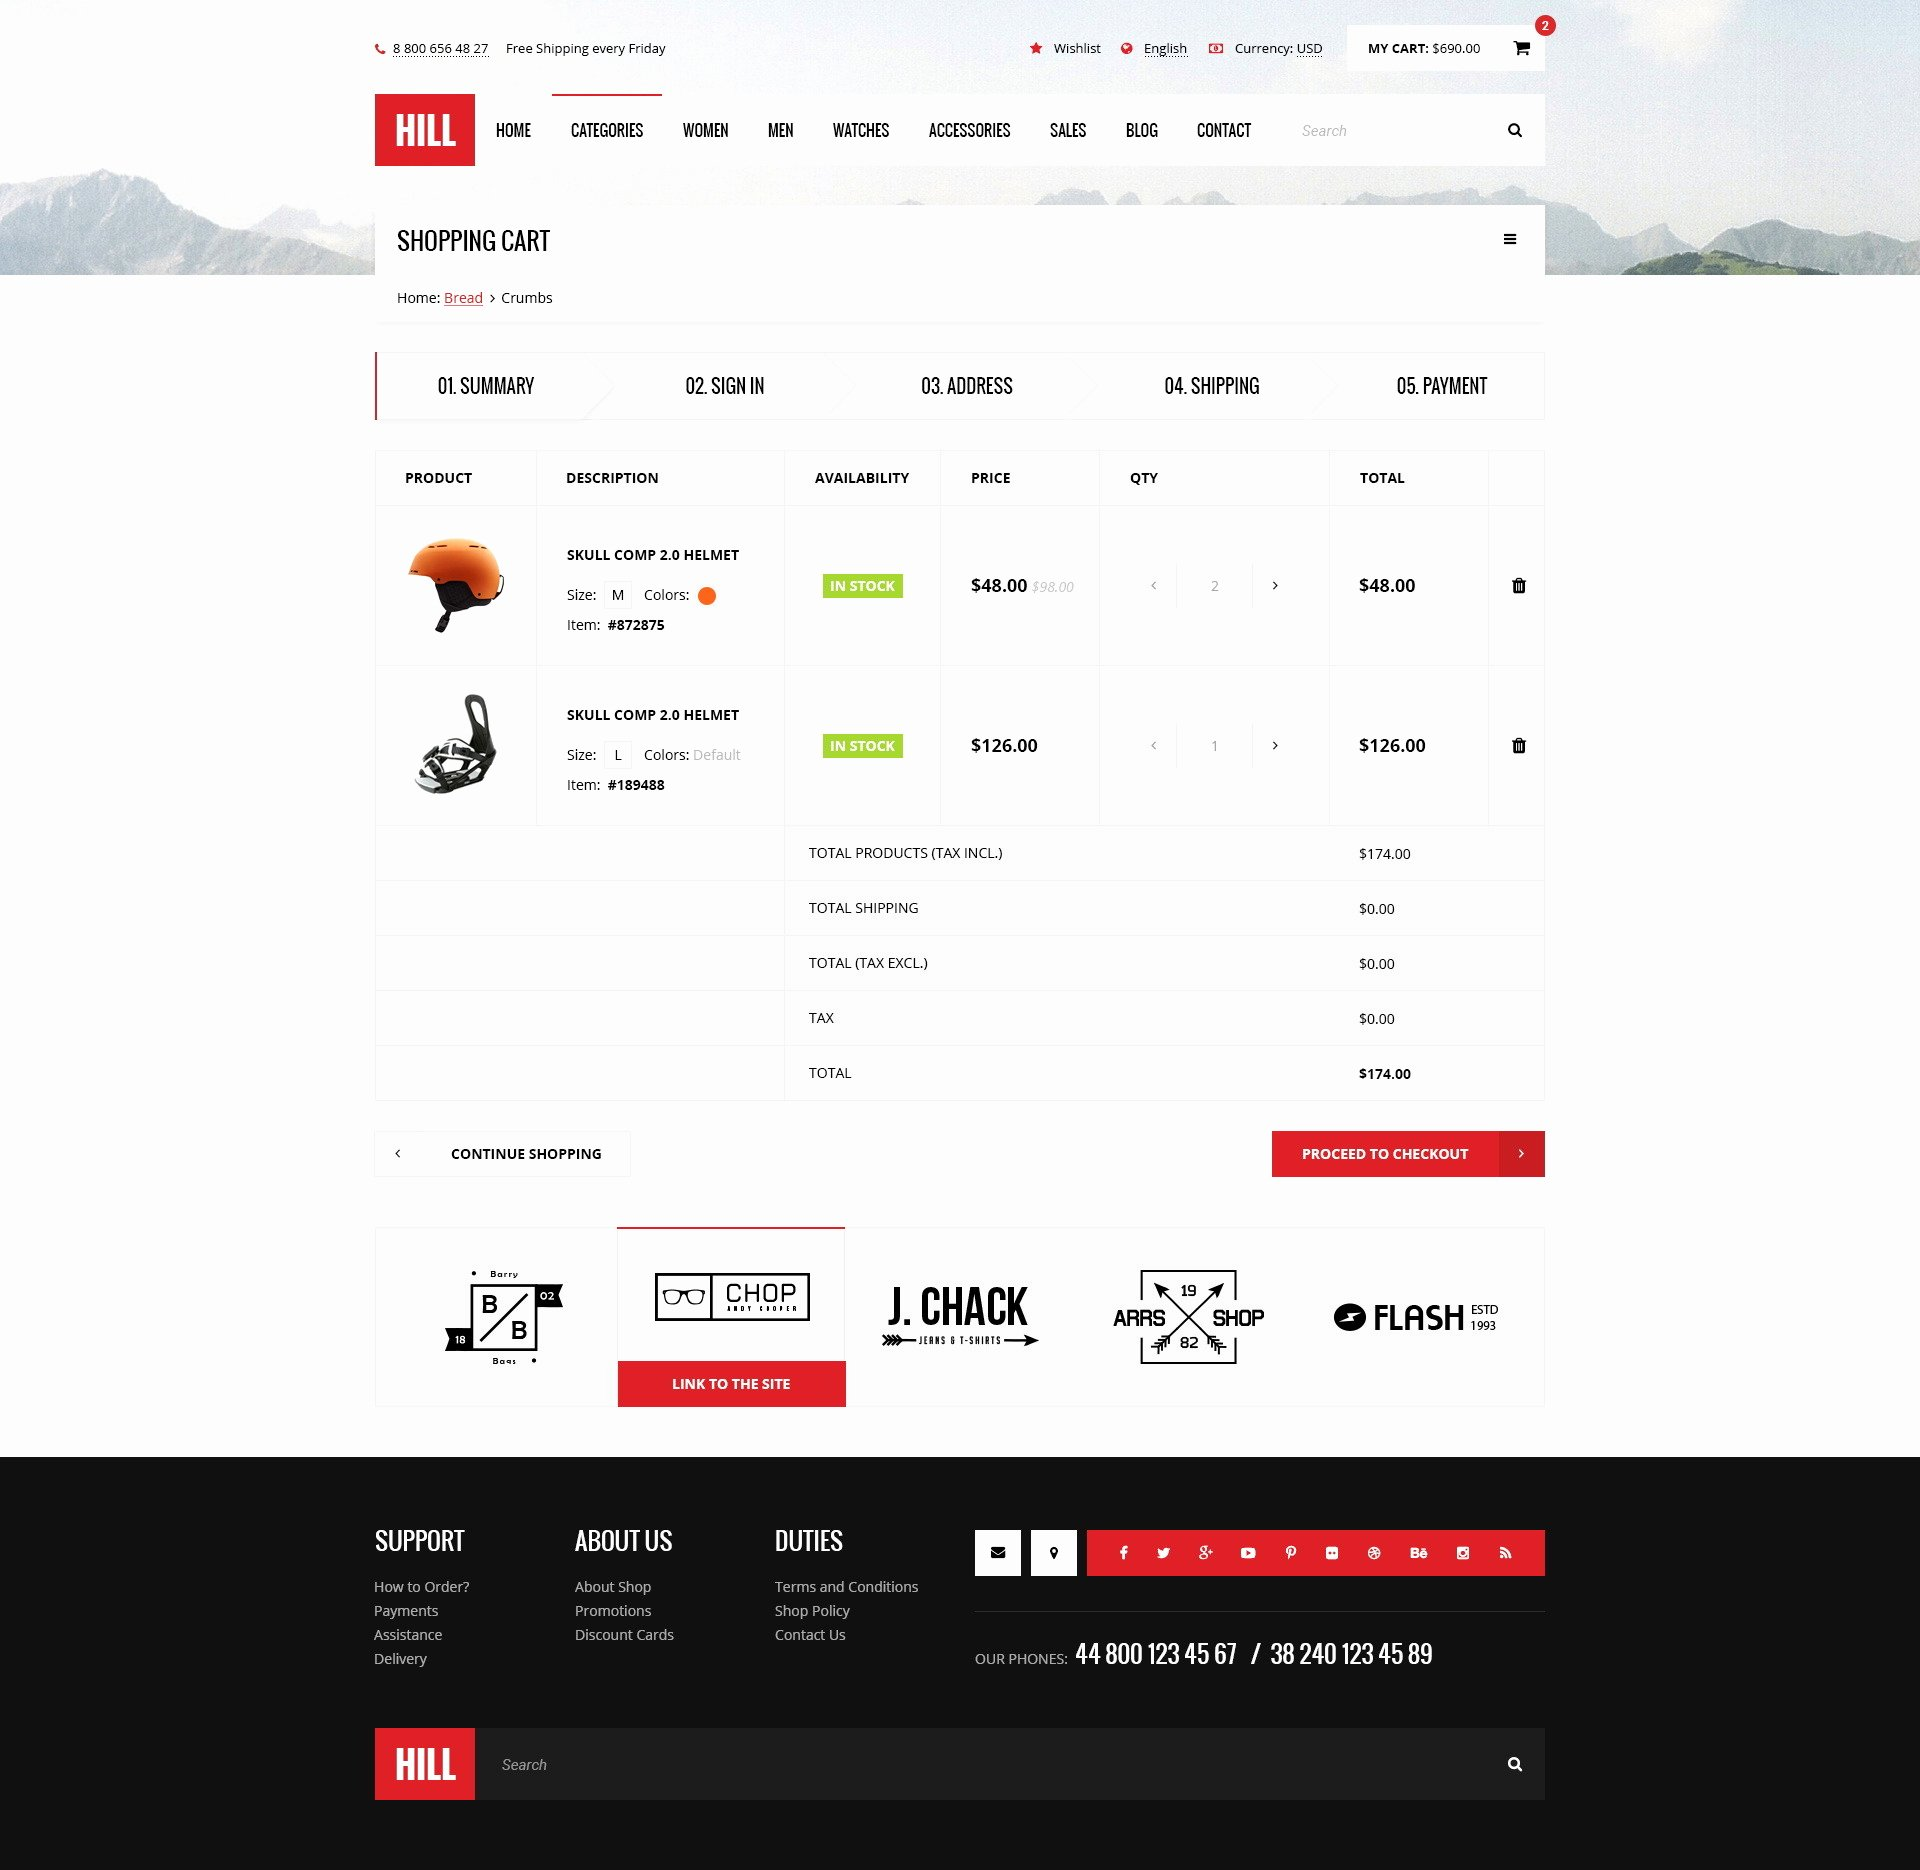 Bootstrap Shopping Cart Template Lovely Hill Premium Bootstrap E Merce Psd Template by